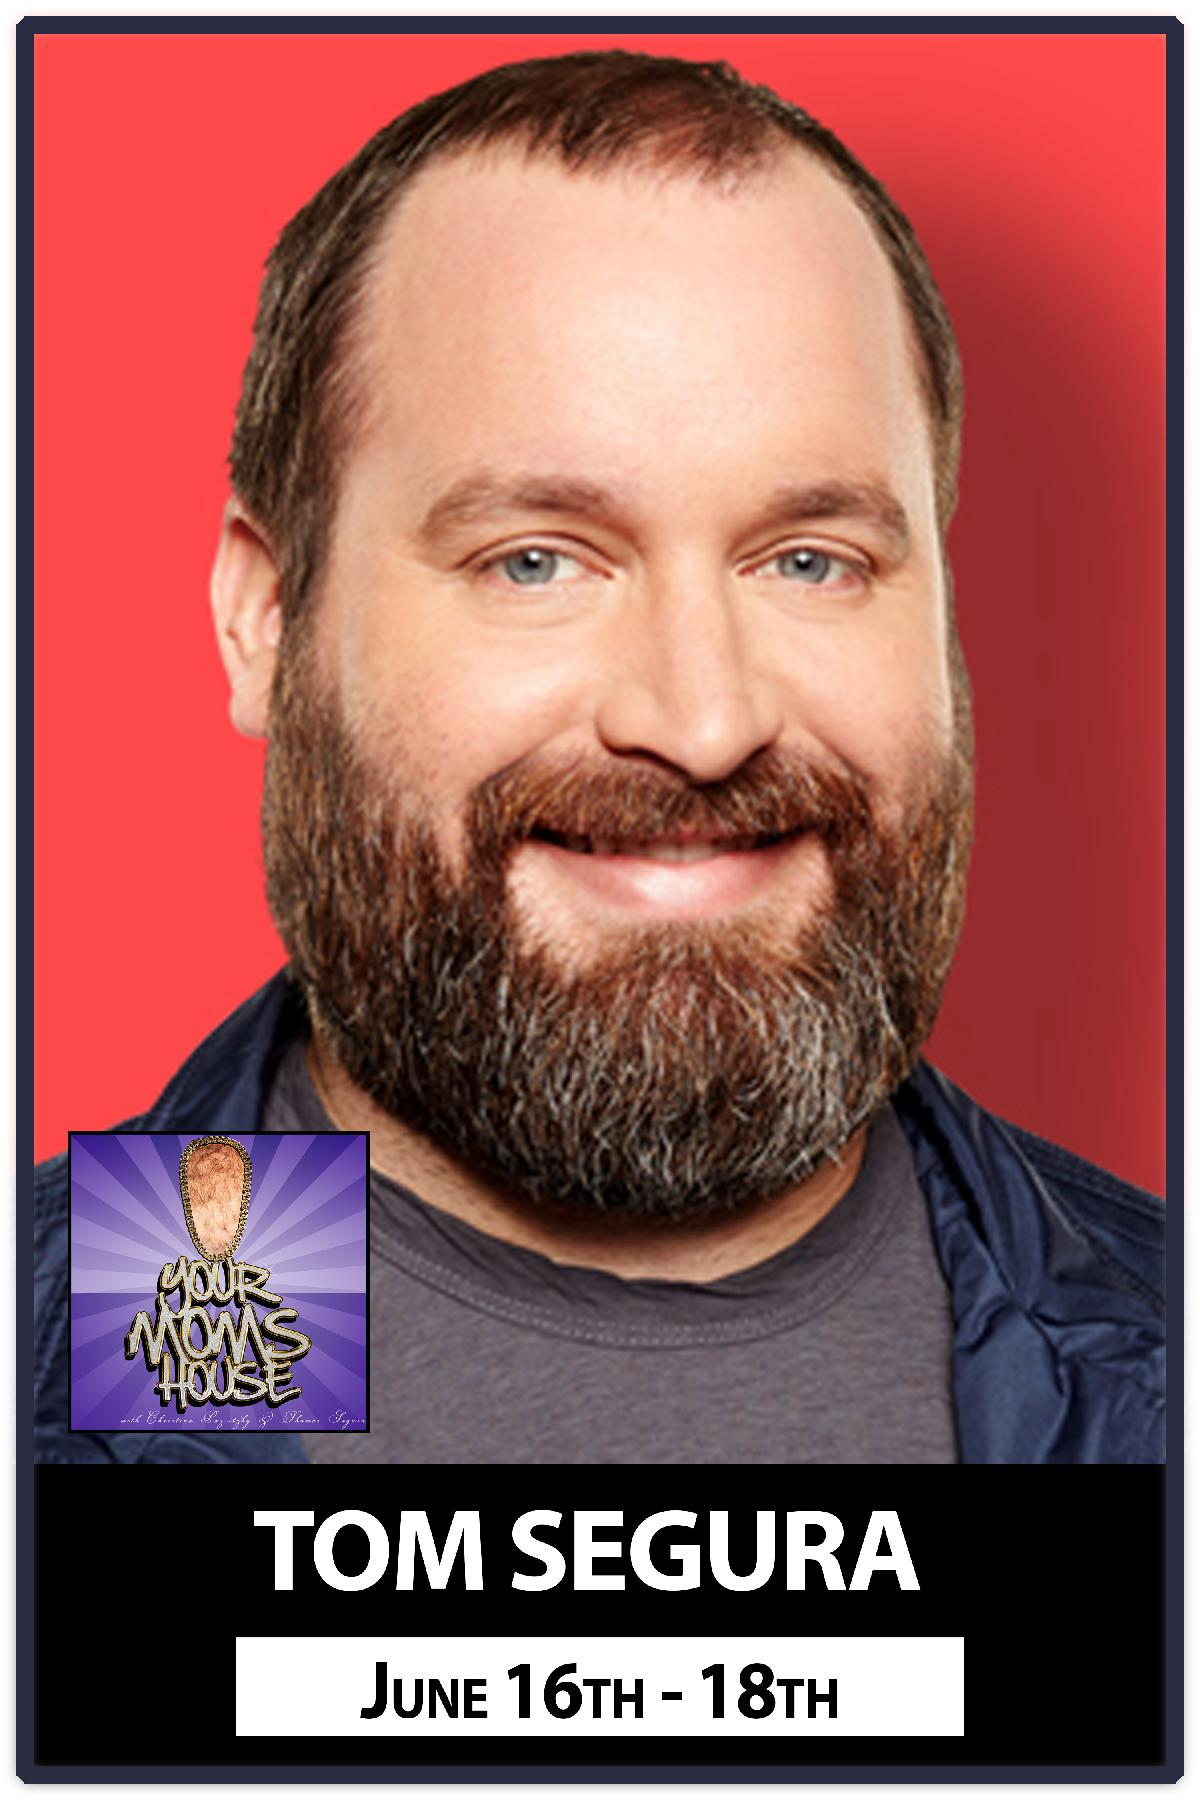 Tom Segura June 16-18, 2016